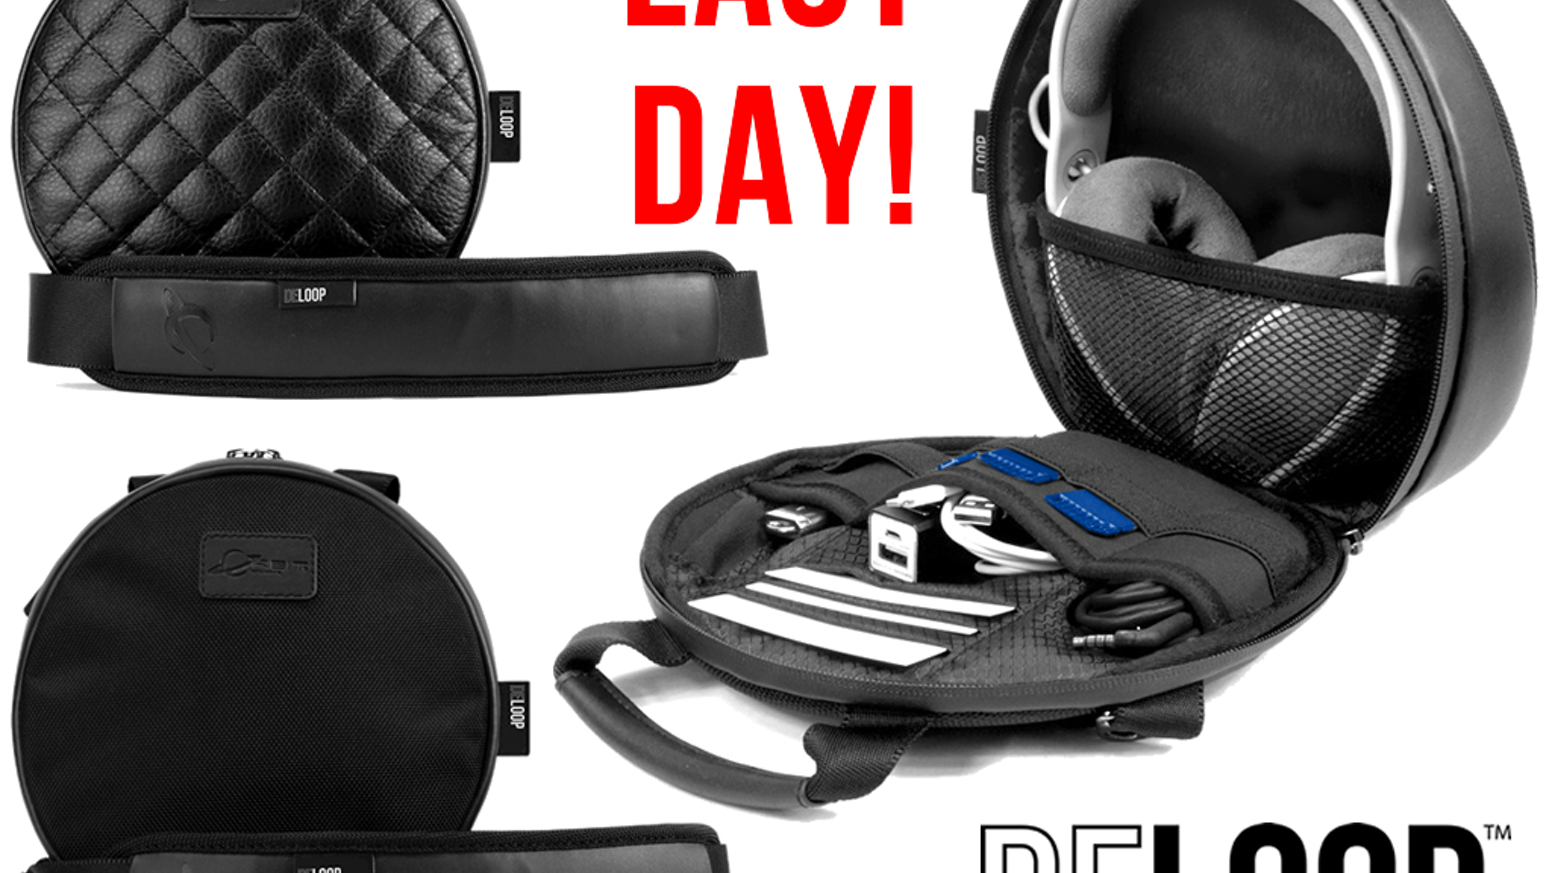 THE ALL IN ONE HEADPHONE BAG! A stylish compact case that also carries accessories, smartphones, mobile devices, USB/SD media, and more